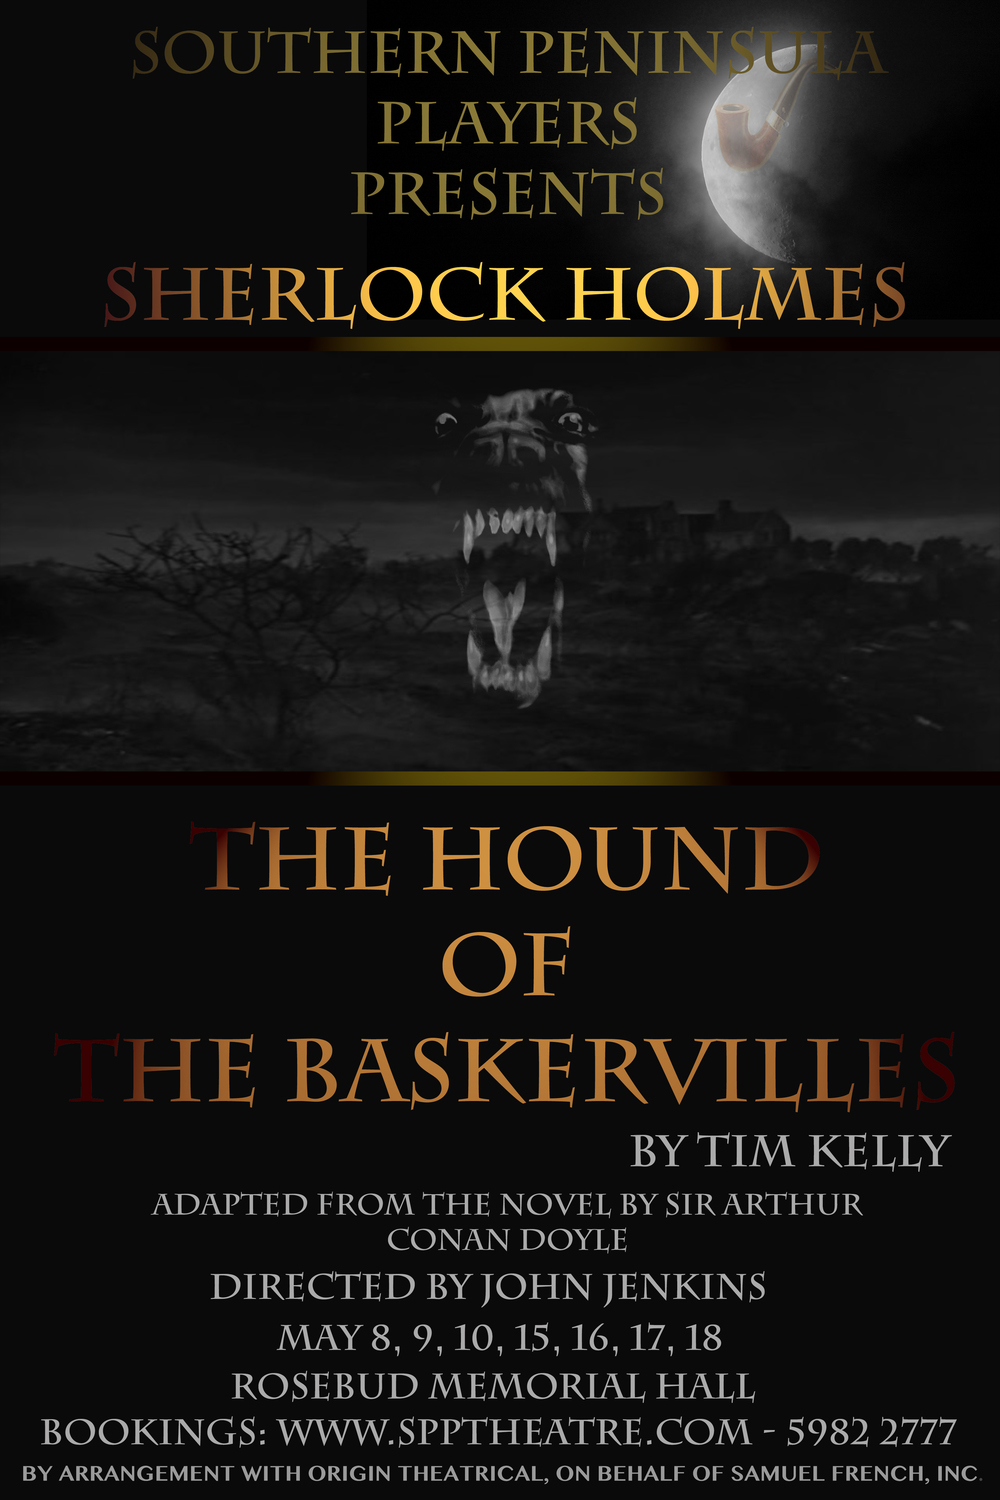 Hound of the Baskervilles A4.jpg